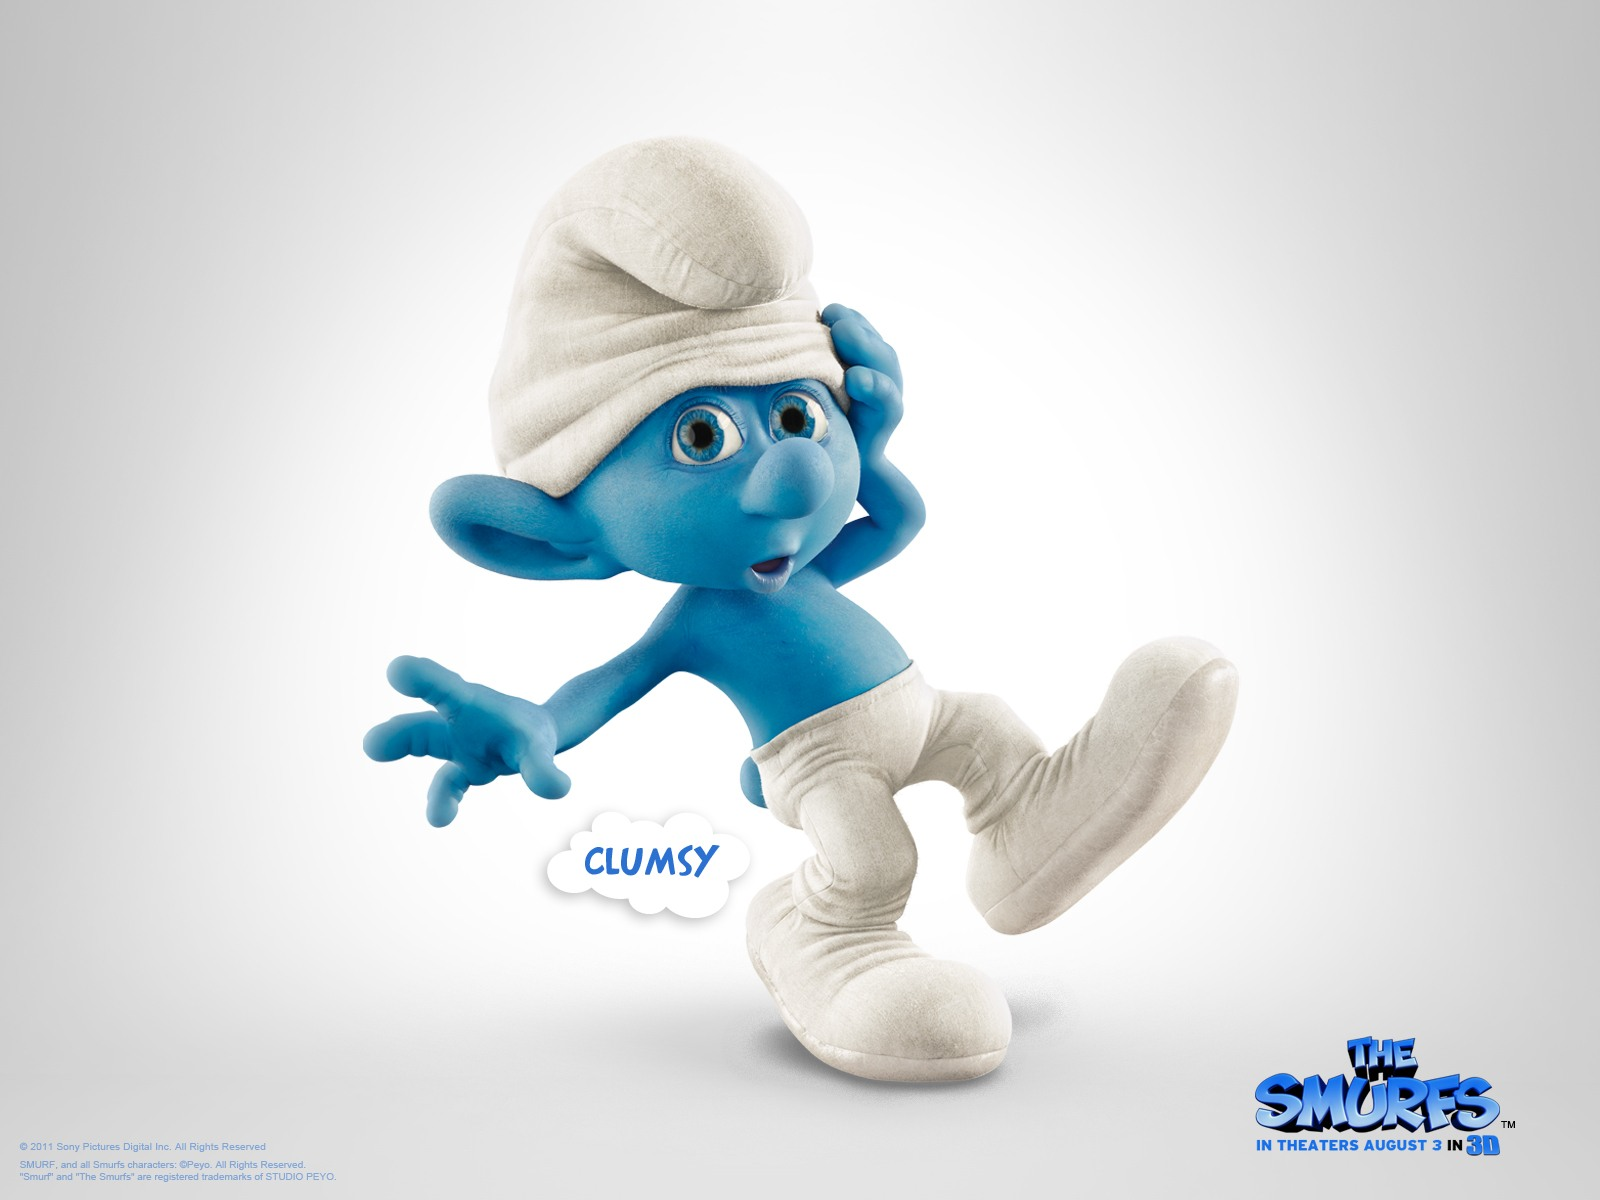 http://4.bp.blogspot.com/-vnGUF6Dr9O0/UH8nmP0fLnI/AAAAAAAAJr0/ytttP-vpEb4/s1600/Clumsy+The+Smurfs+3D+Movie+HD+Wallpaper.jpg